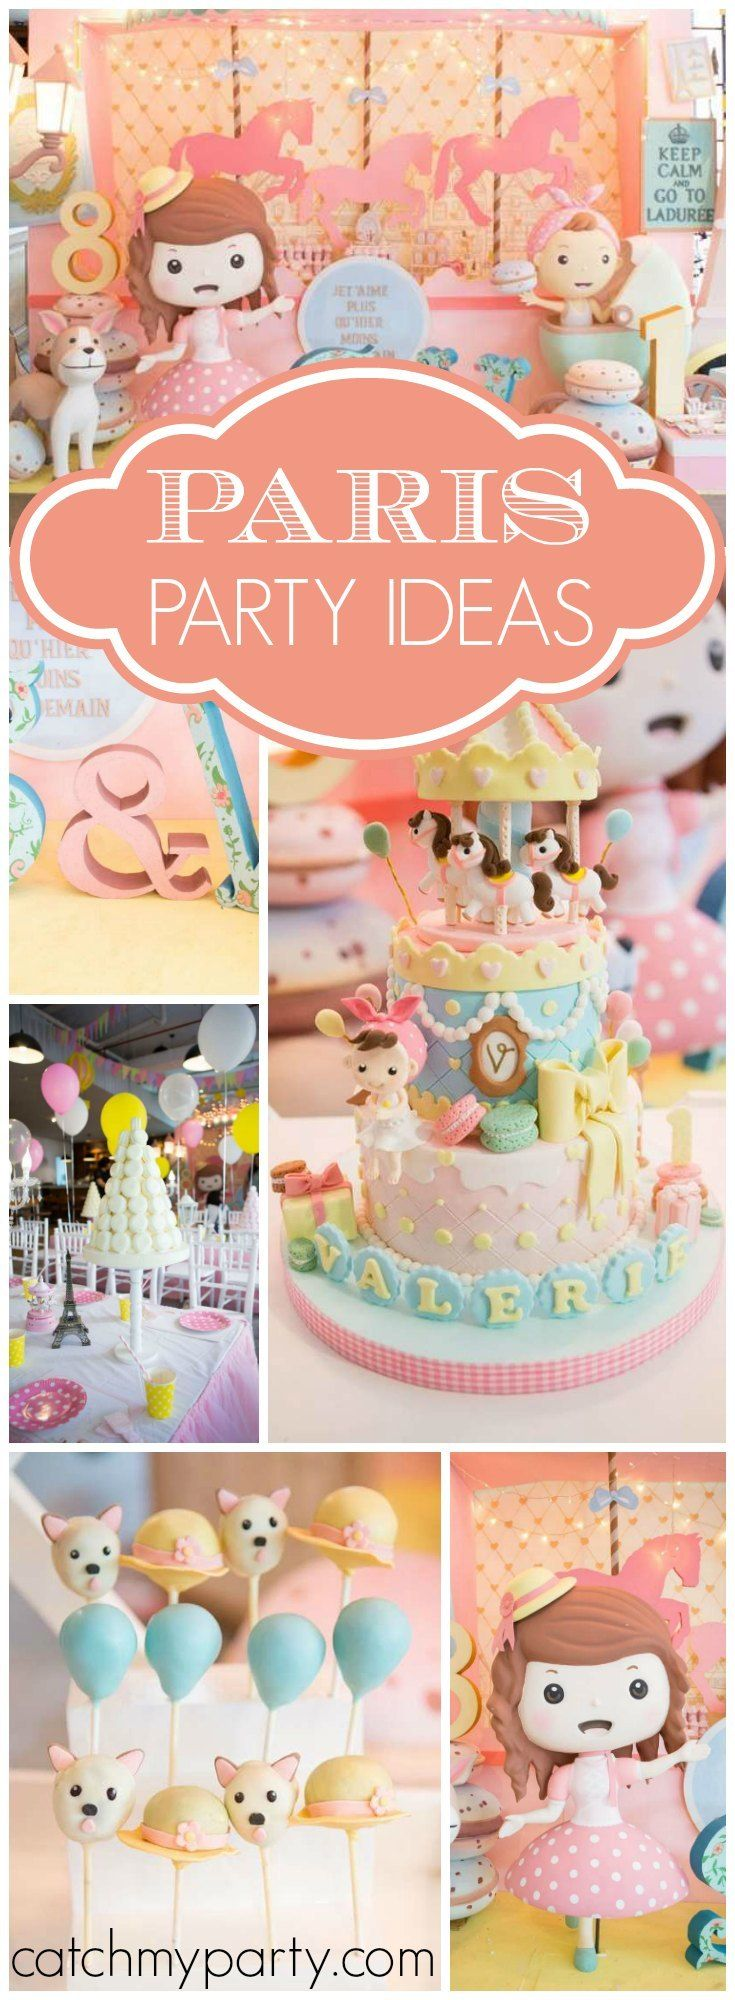 Paris Themed Birthday Party Ideas - French parisian birthday they dream in perfect french je t aime paris